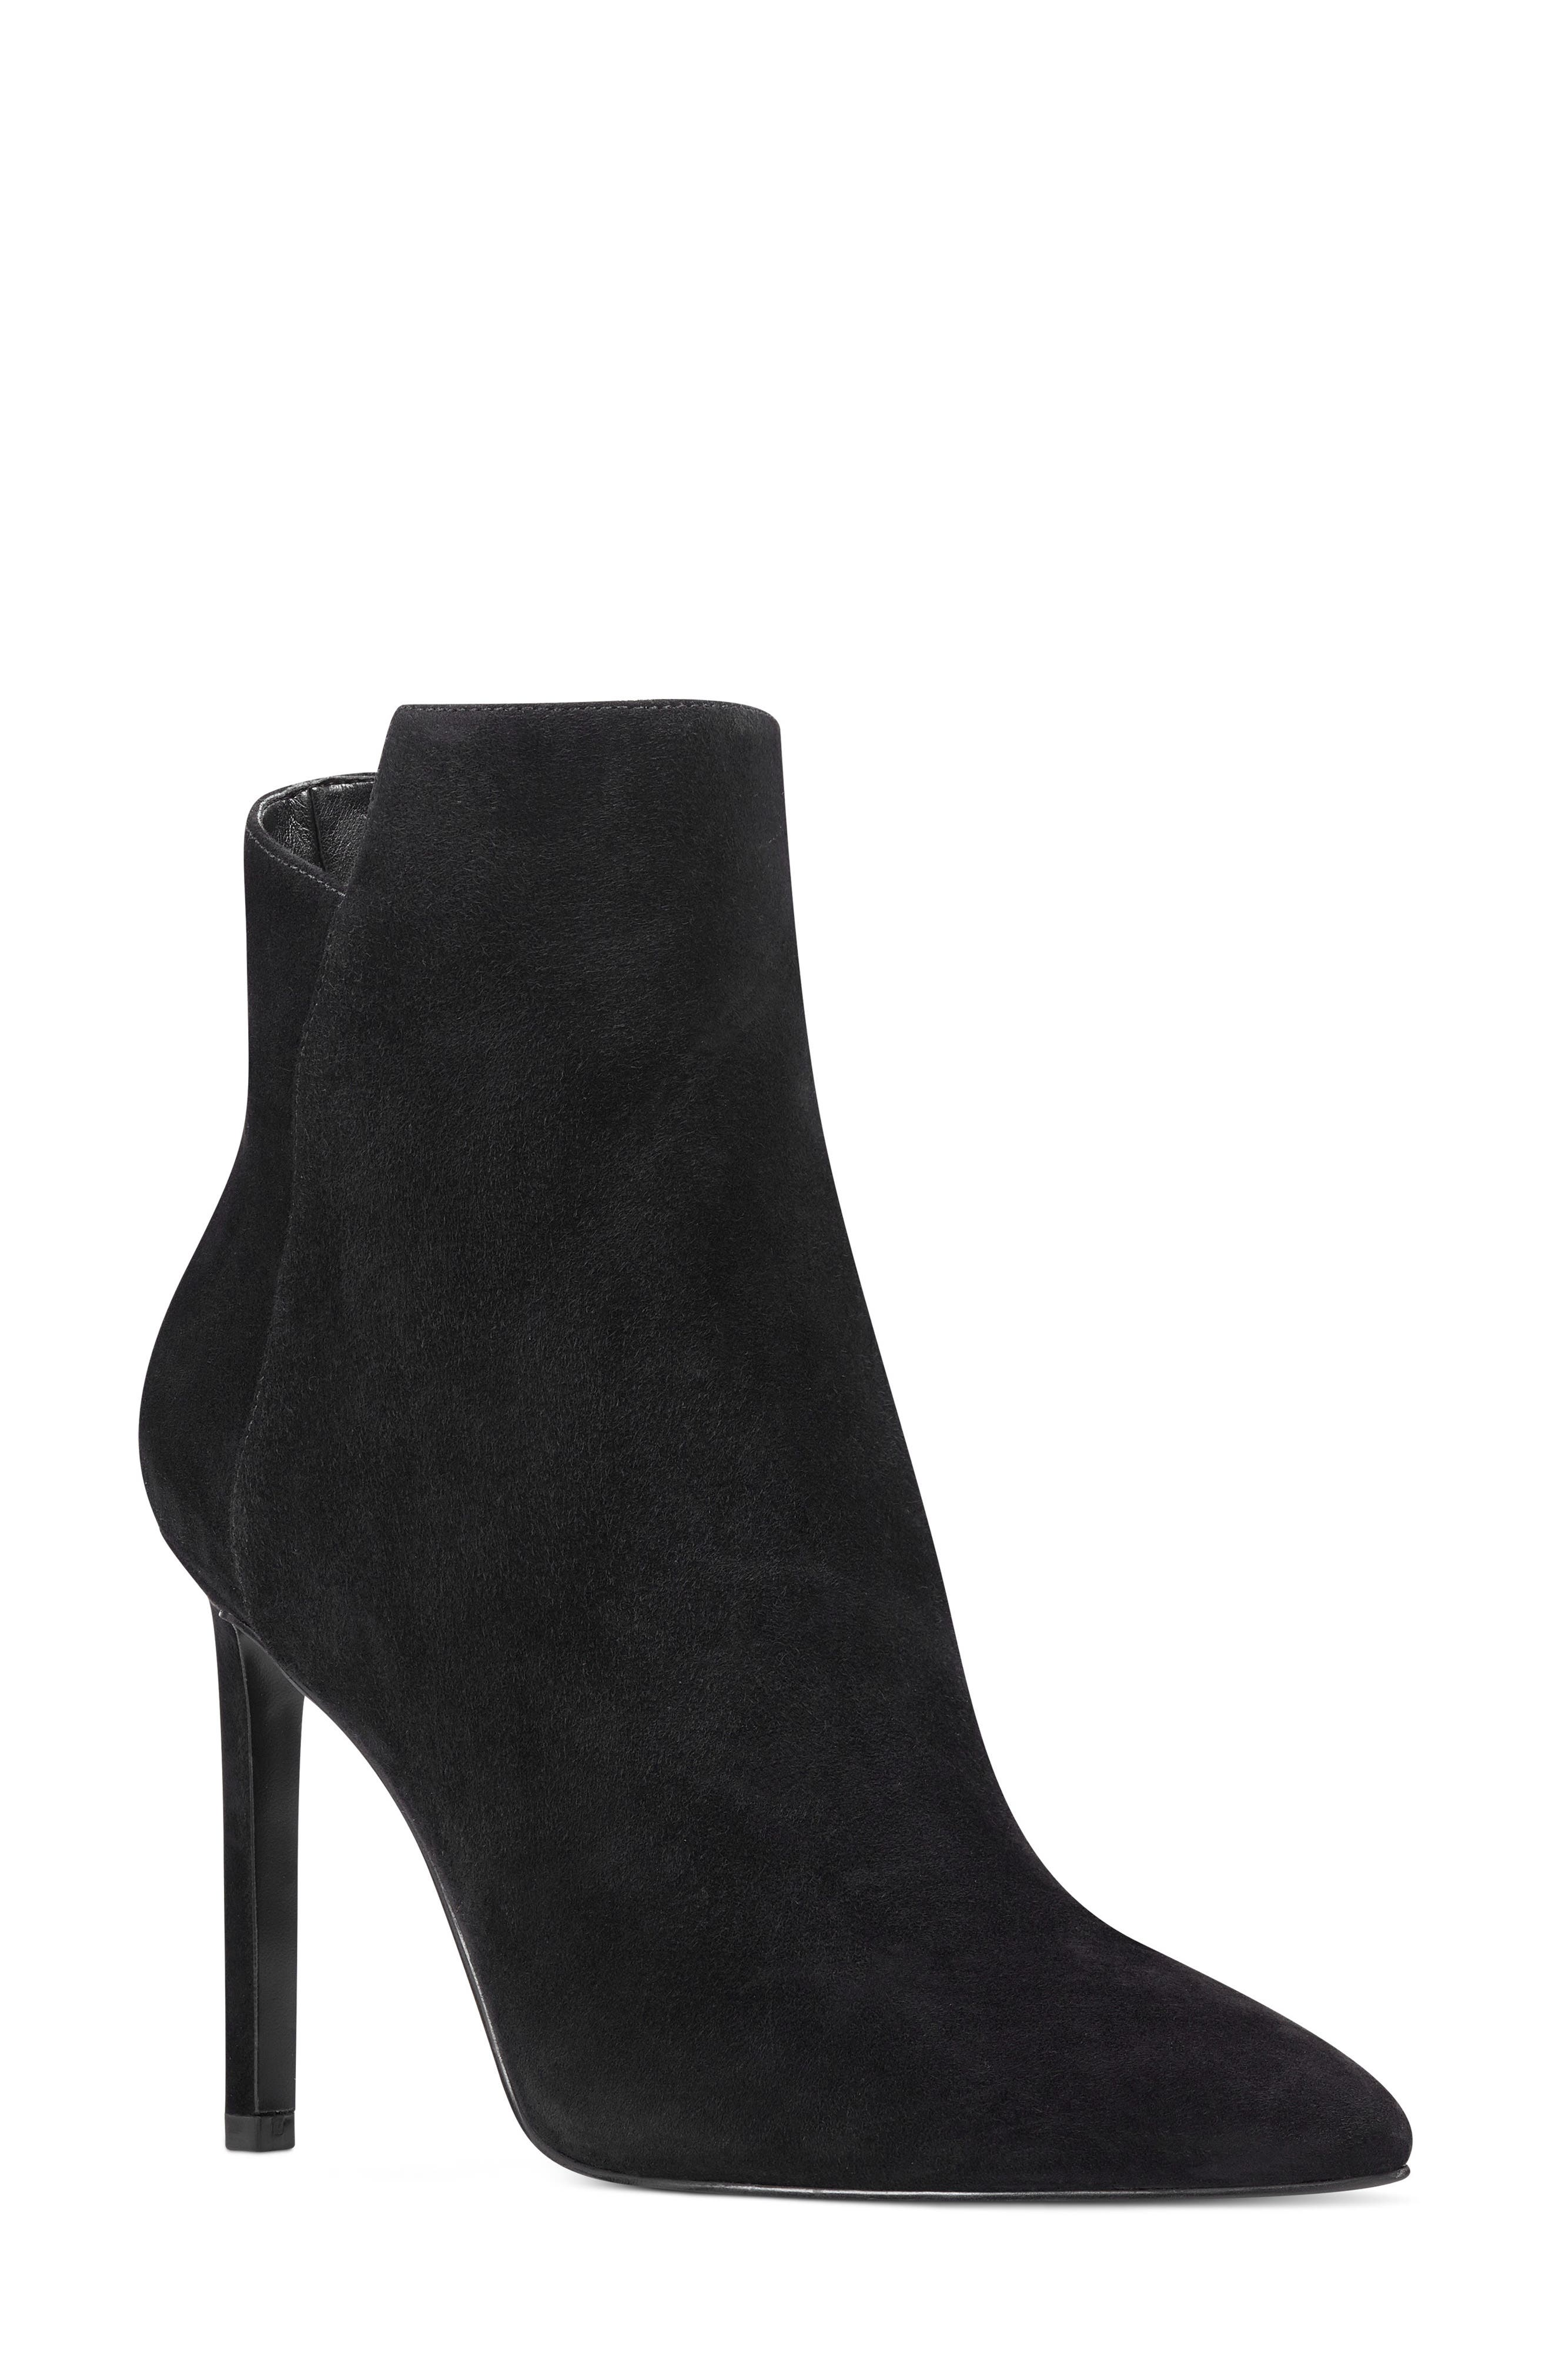 Nine West Tomorrow Bootie, Black